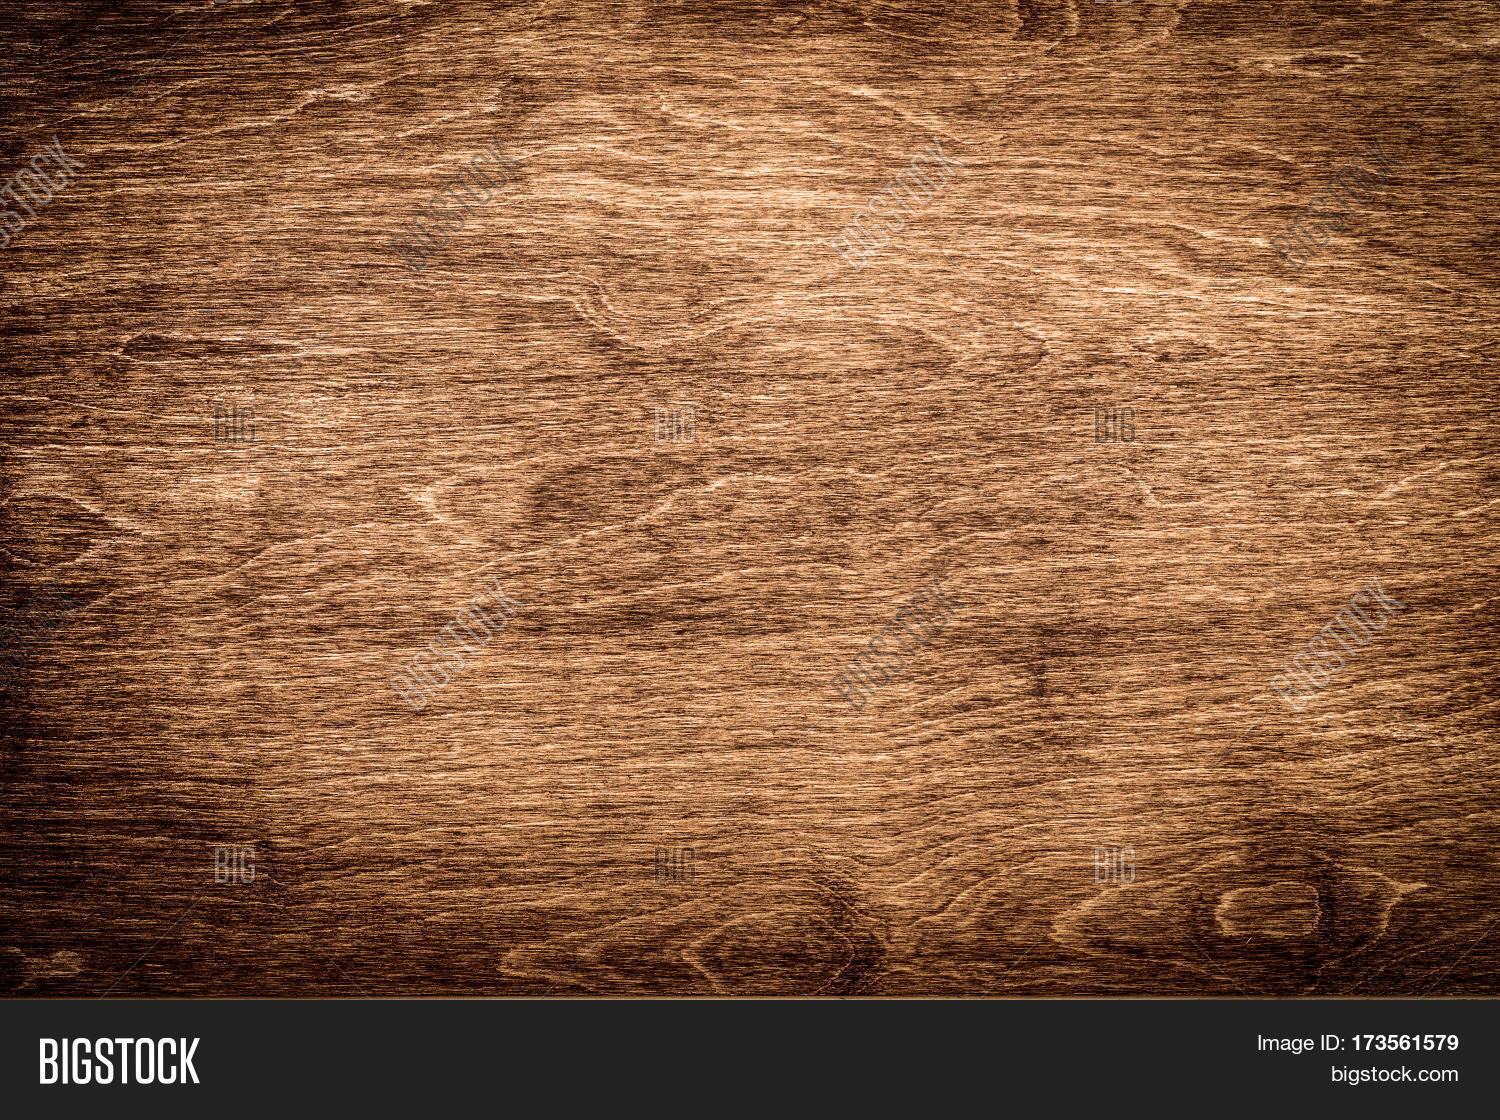 Wooden table background pattern - Wood Table Surface Top View Natural Wood Patterns Timber Background Of Wood Textur